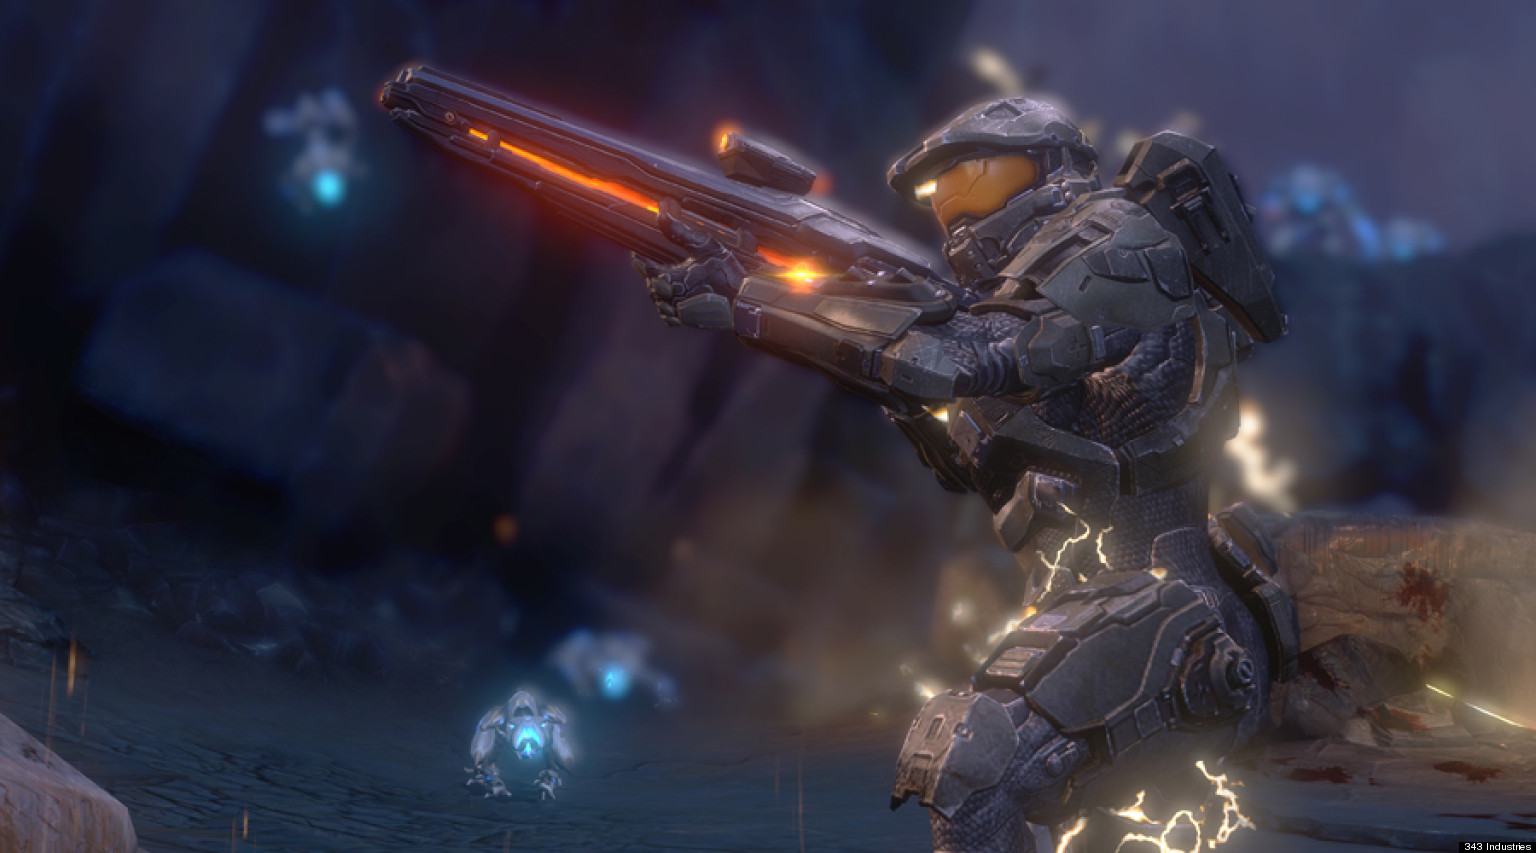 Halo 4 Impressions: First Look At 'Forerunner' Campaign ...